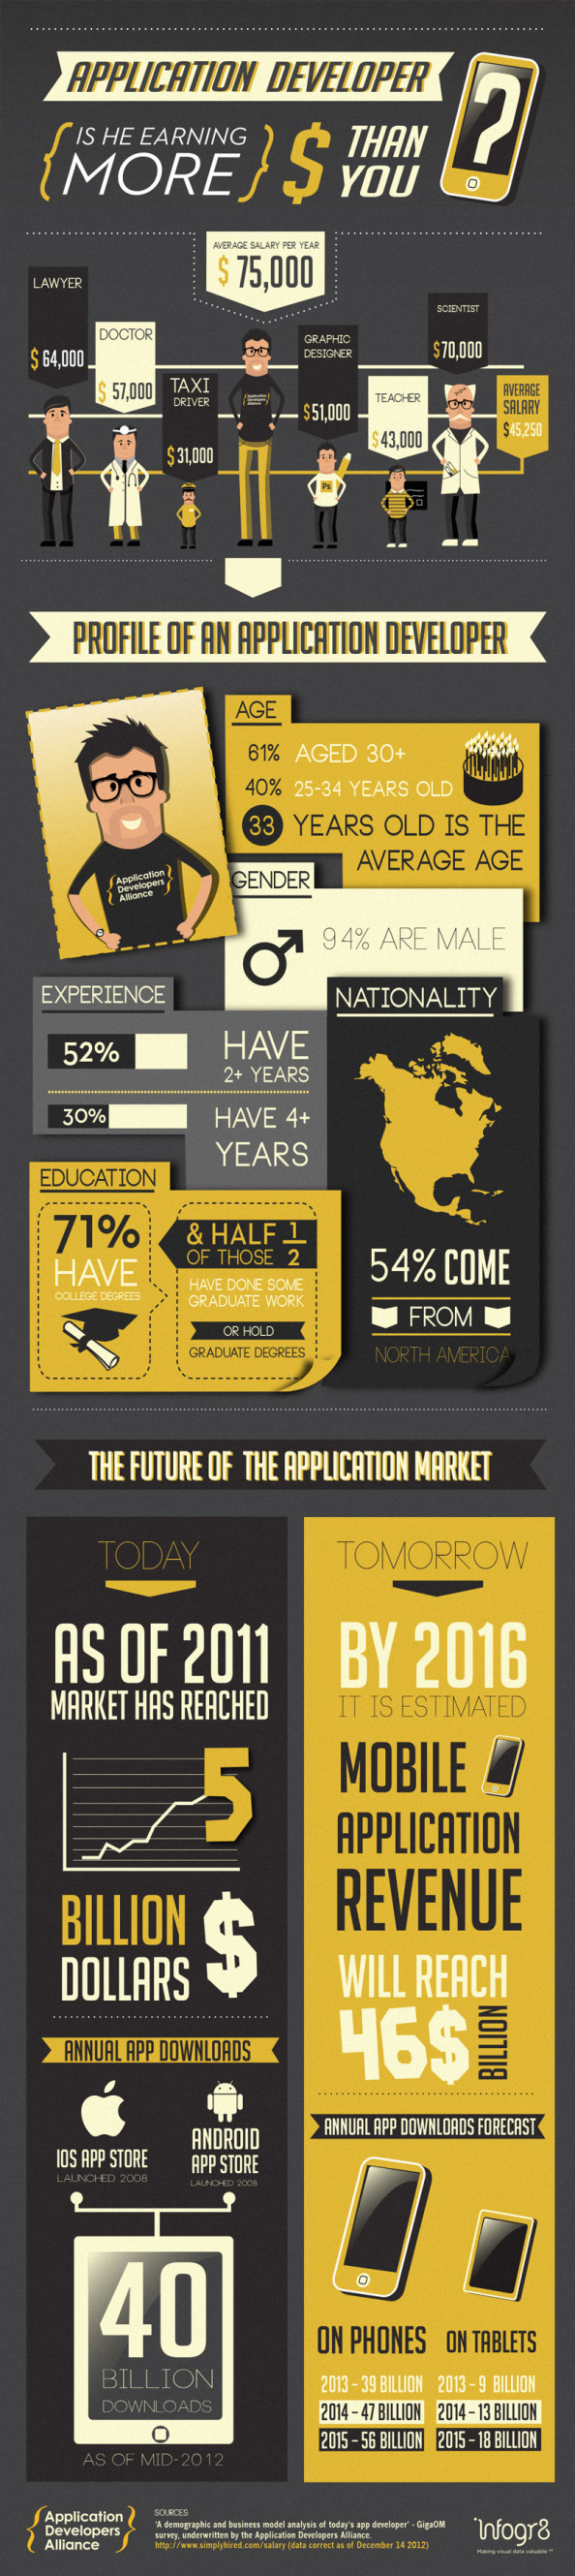 Is an application developer earning more than you? Infographic